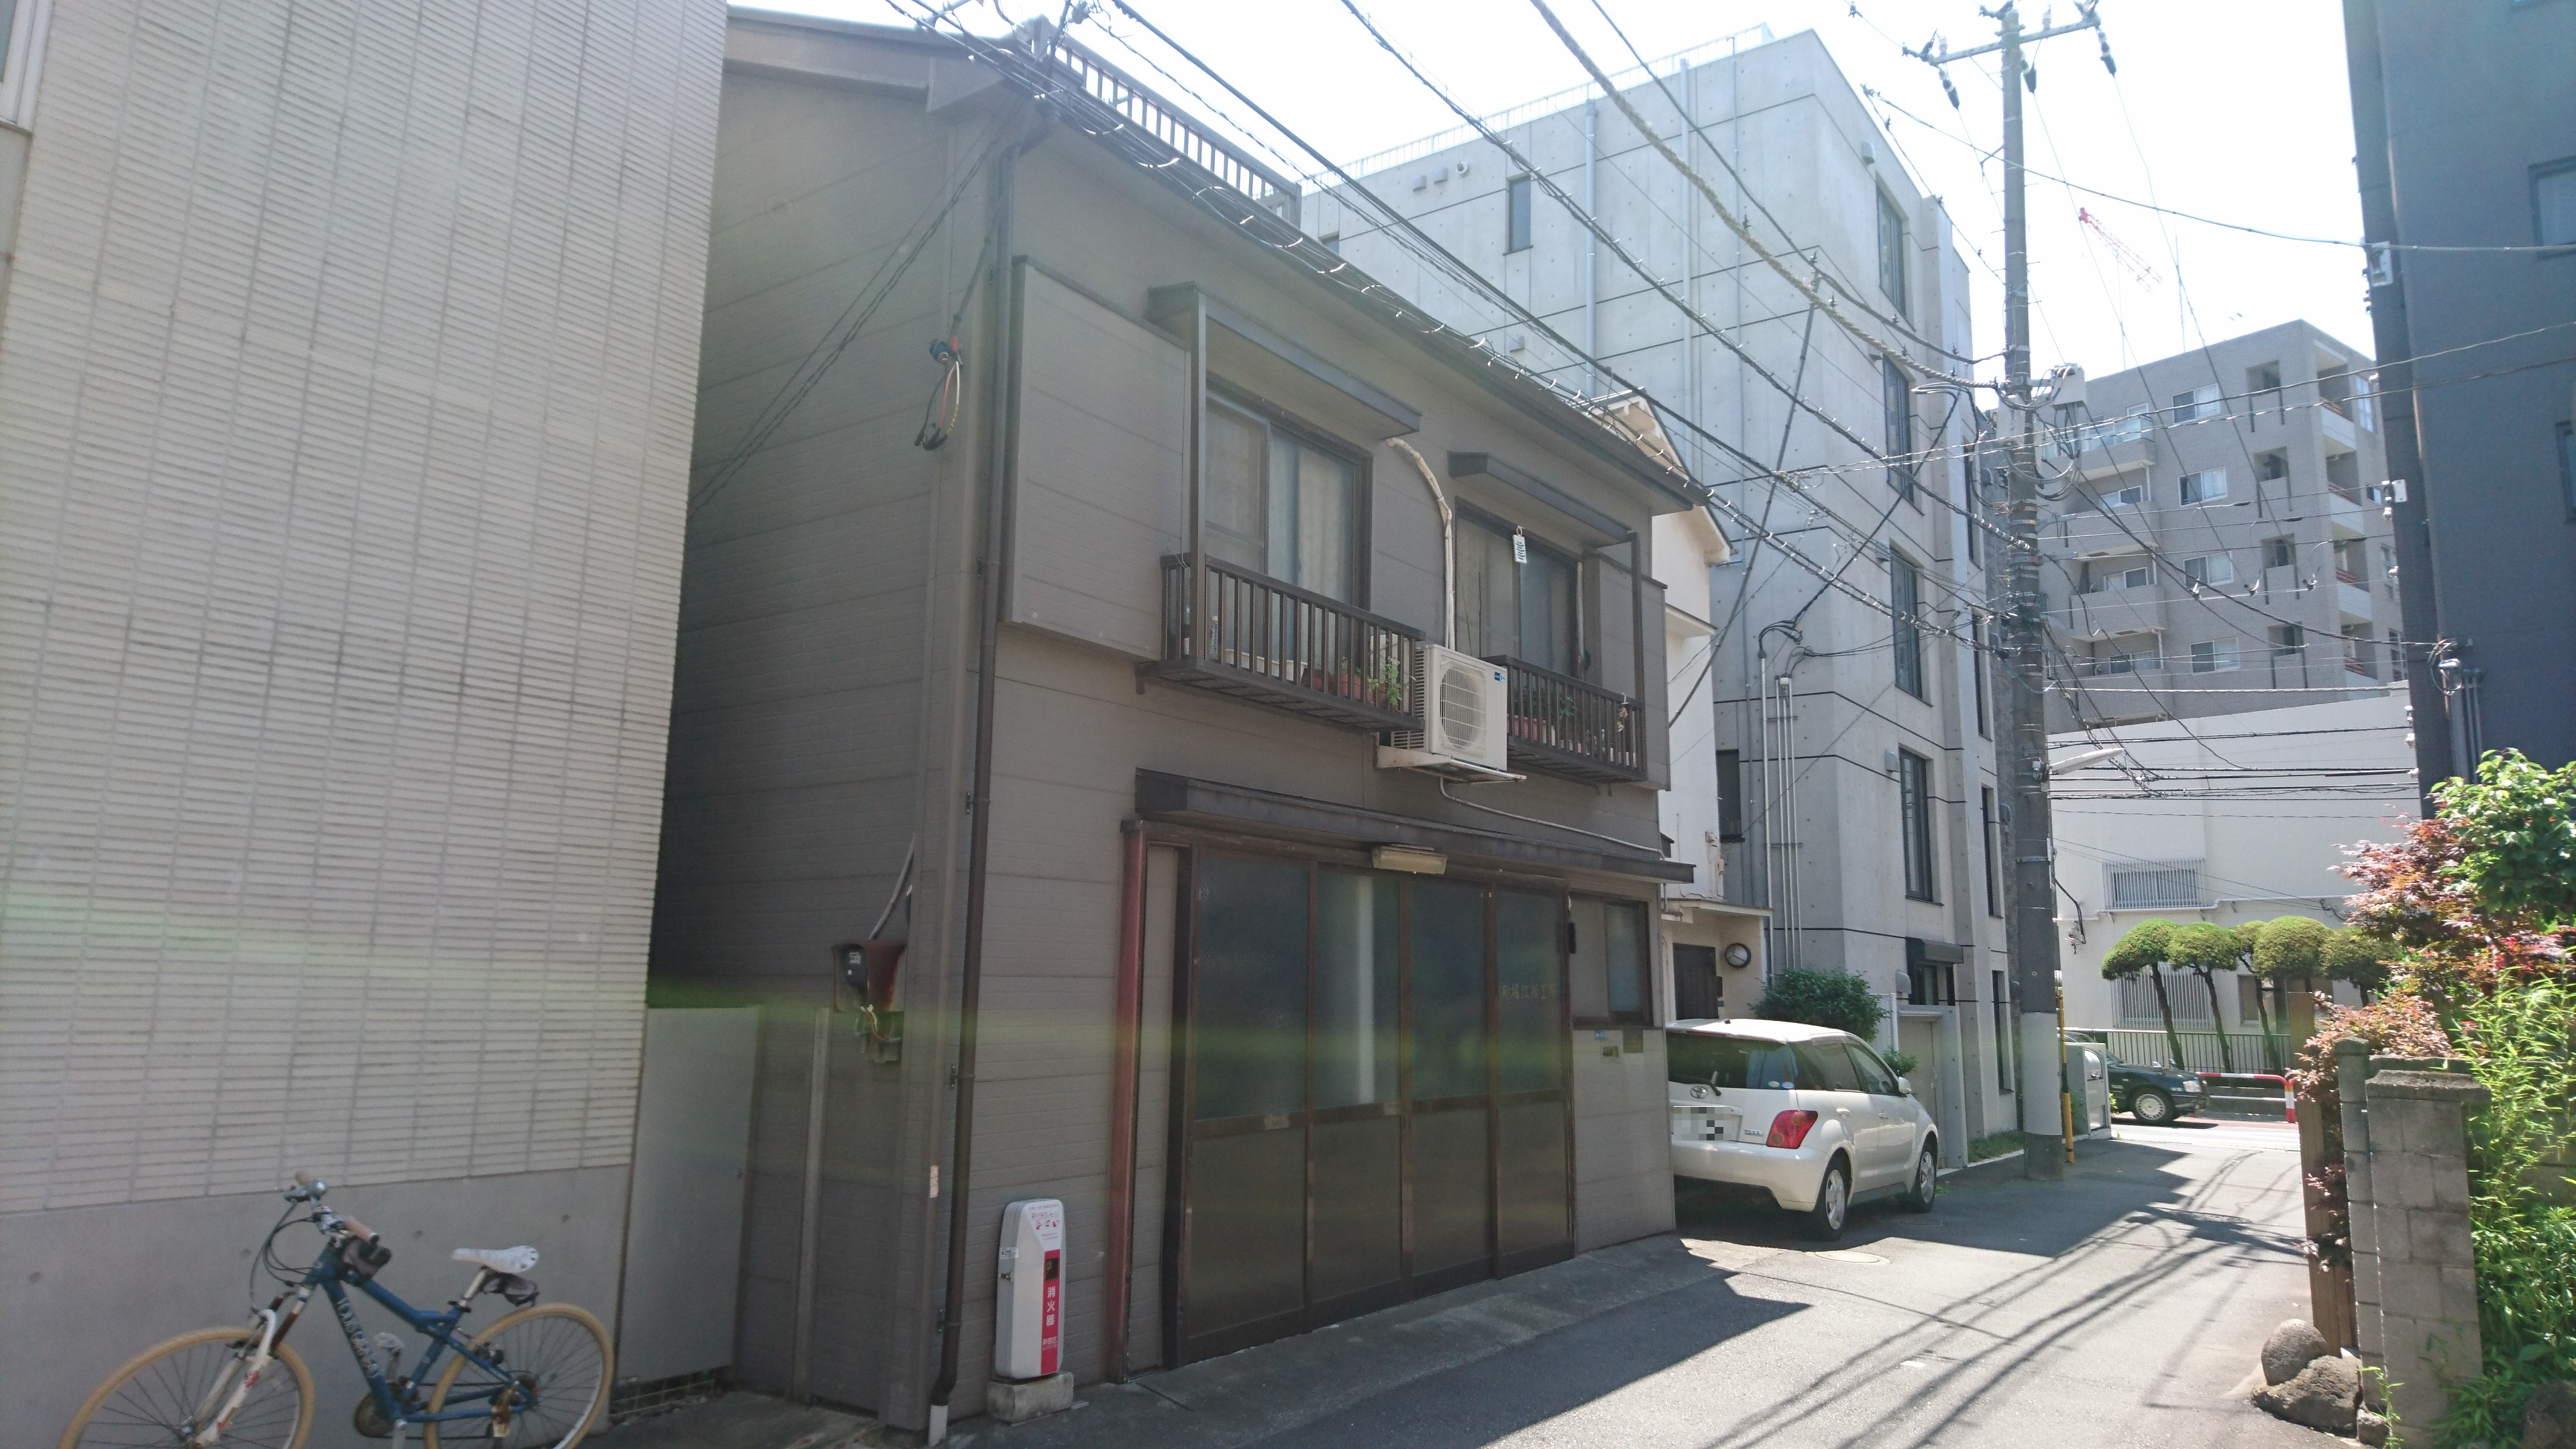 A image of 東京都新宿区 解体工事 【東京・埼玉・神奈川の解体工事なら東央建設へ】